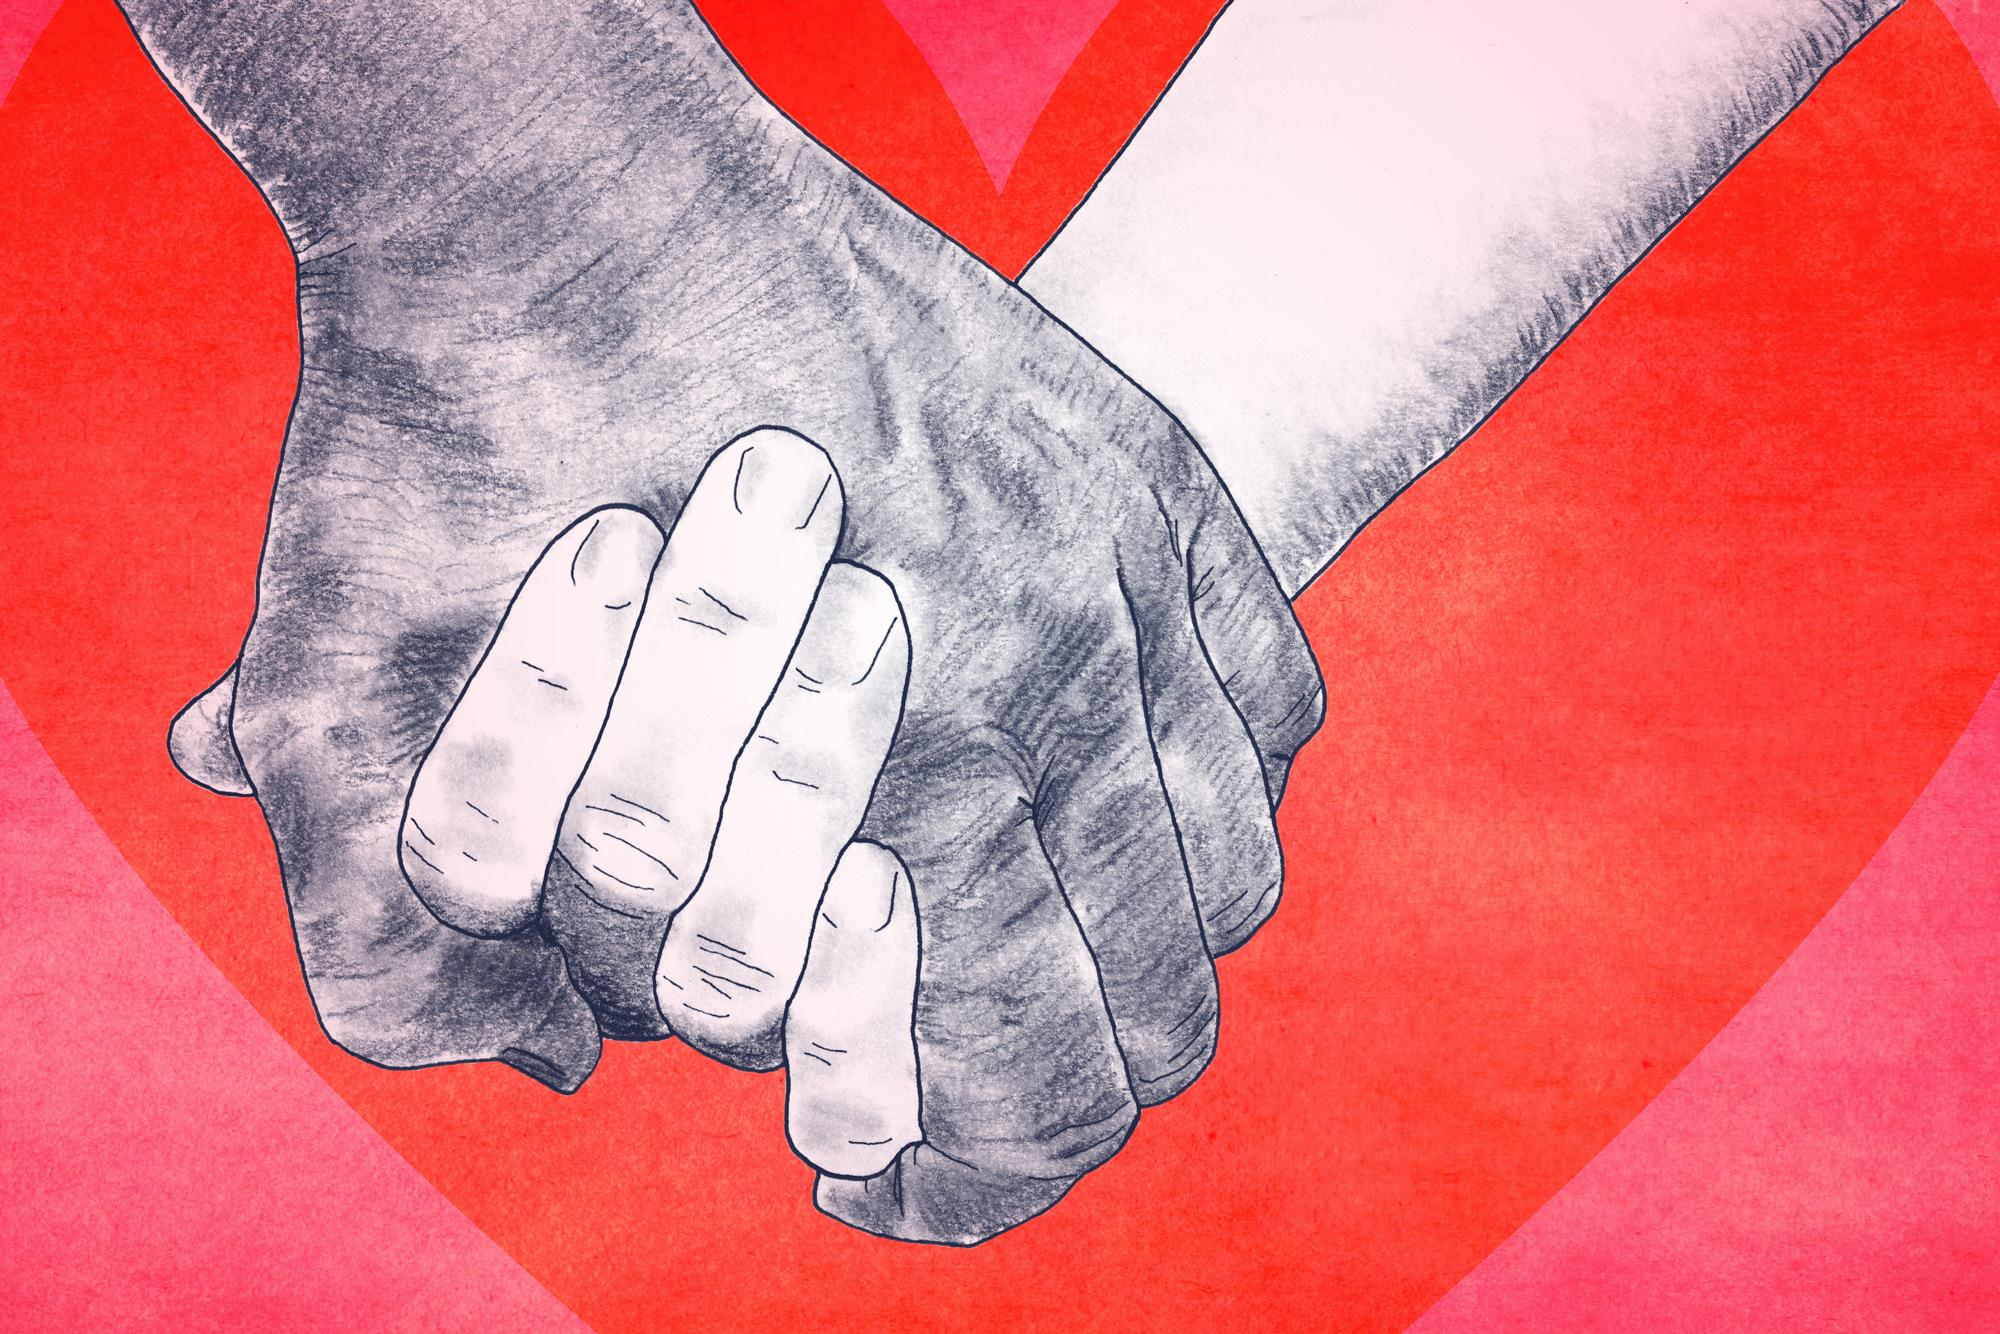 We Asked an Expert Why We Hold Hands, and Learned It's Good for You